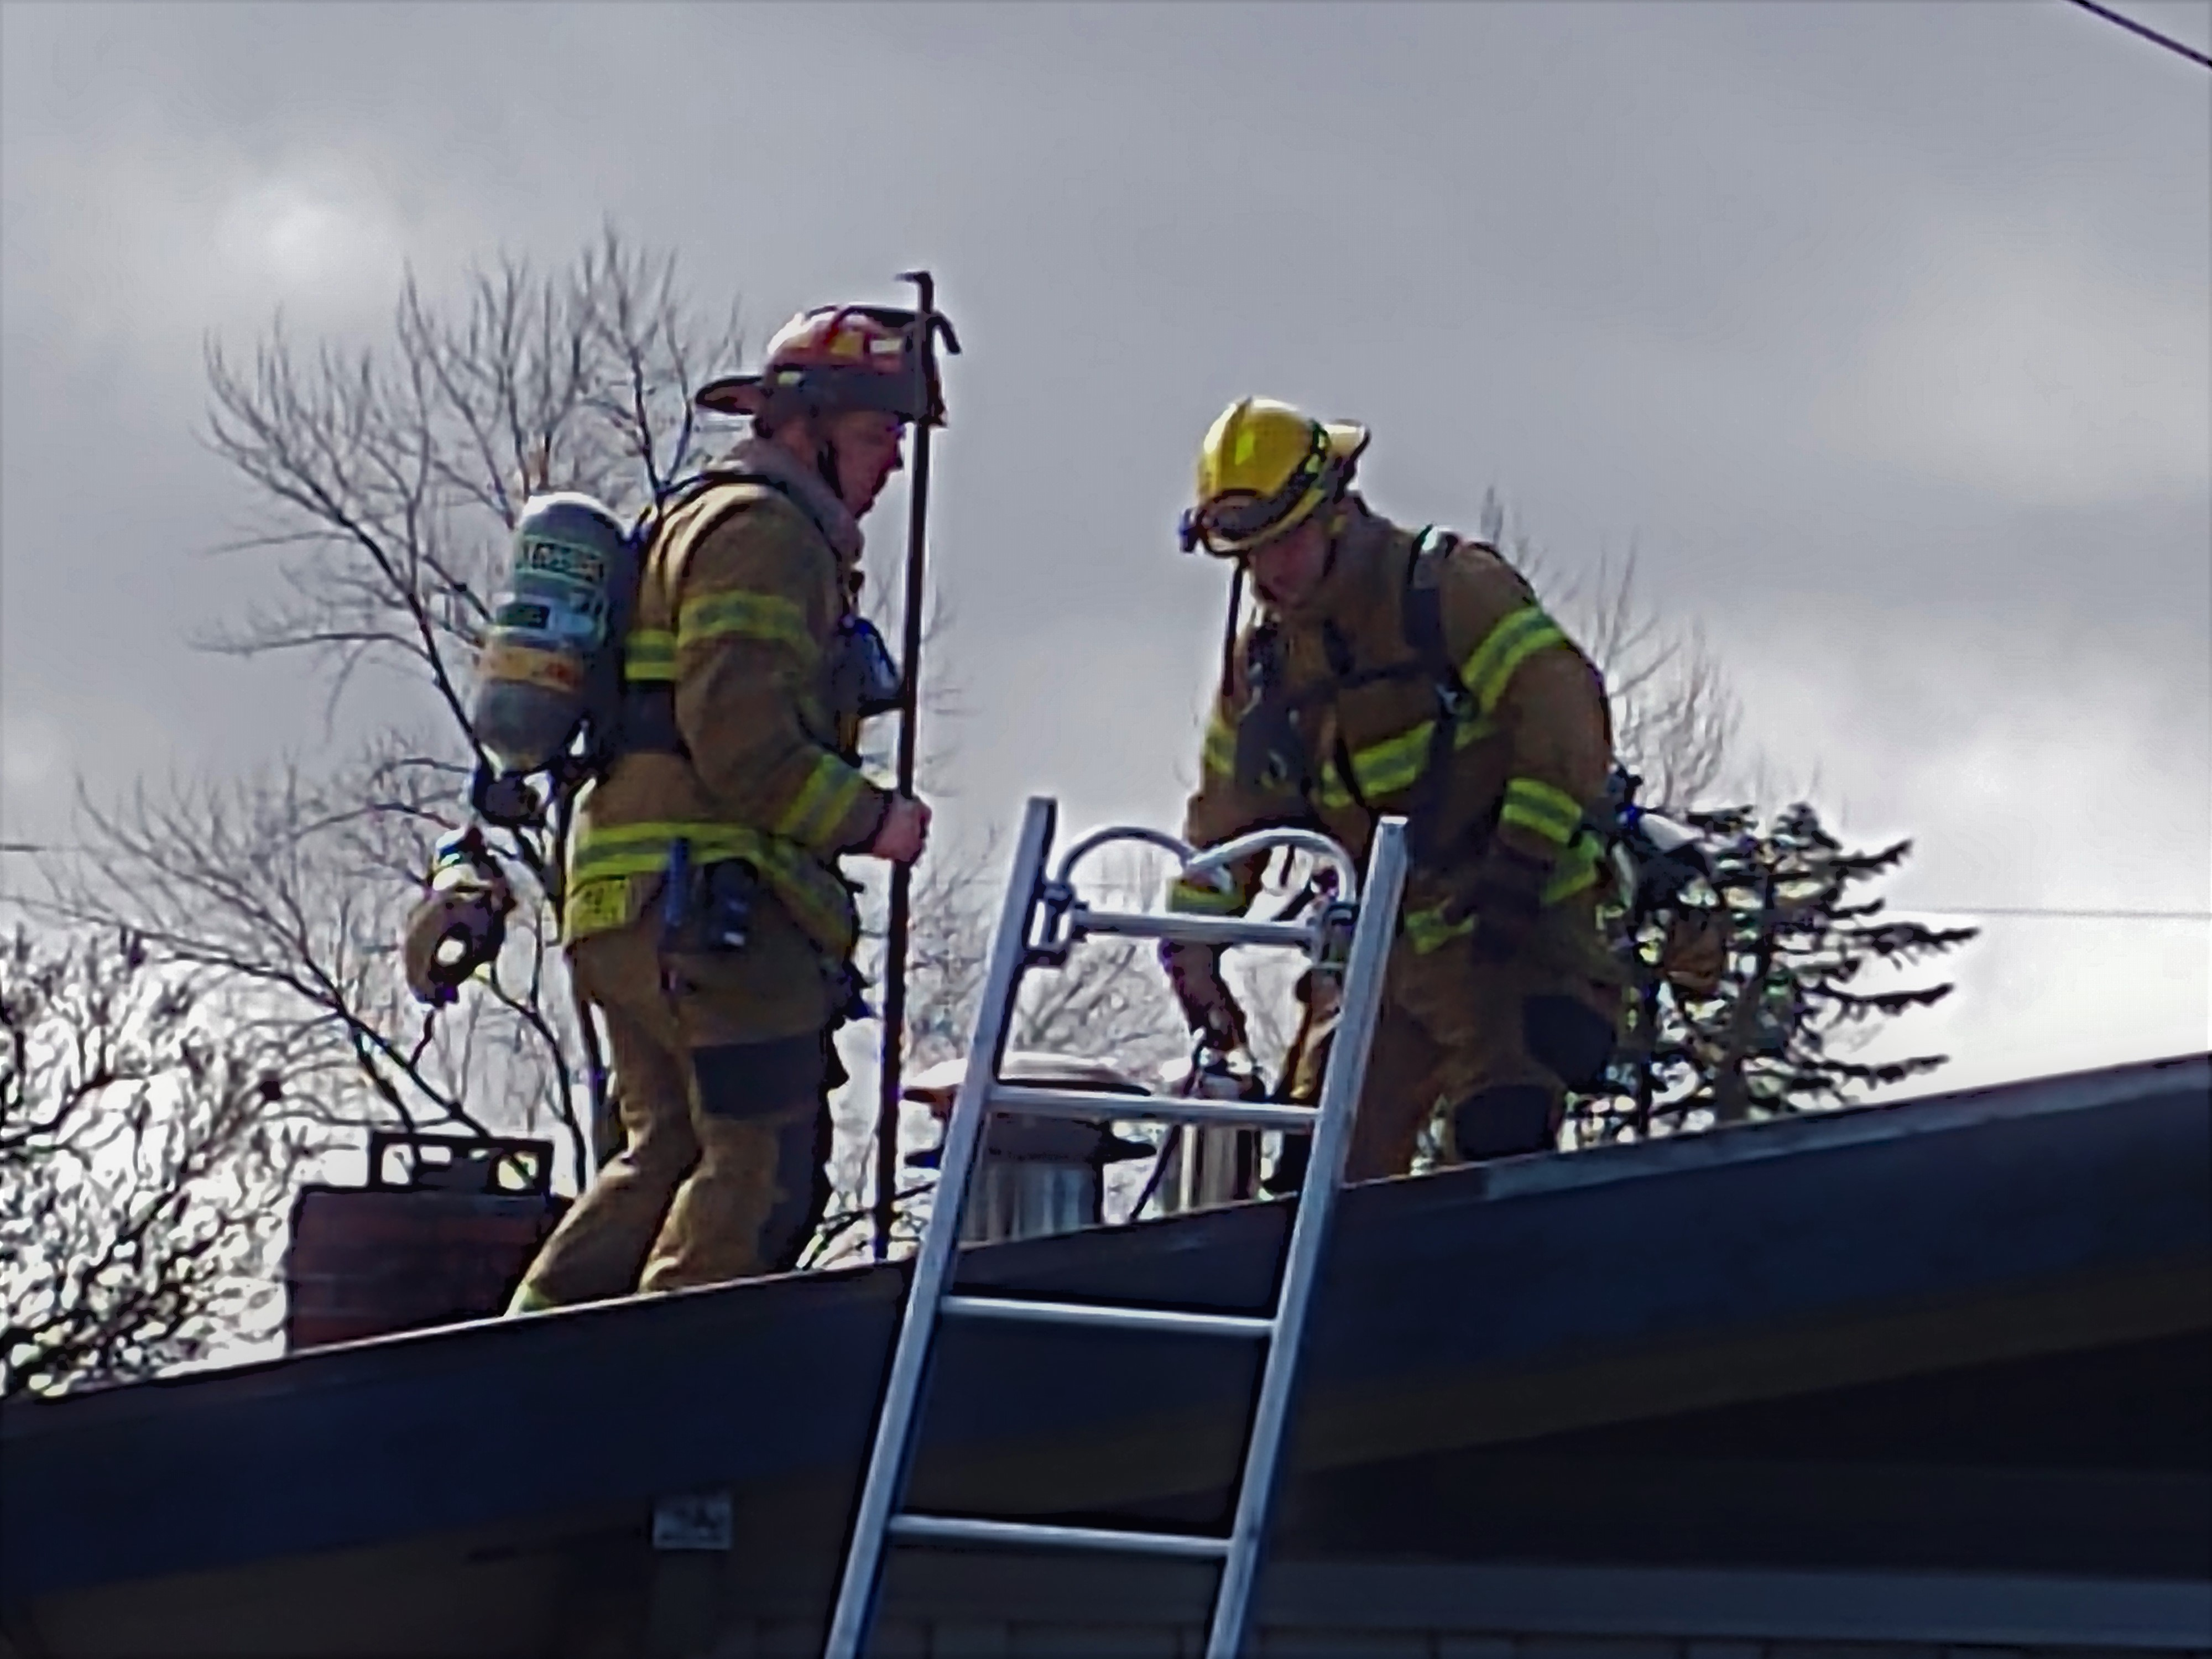 Whatcom County Fire District 7 firefighters deal with a chimney fire at a residence (March 6, 2020). Photo: My Ferndale News